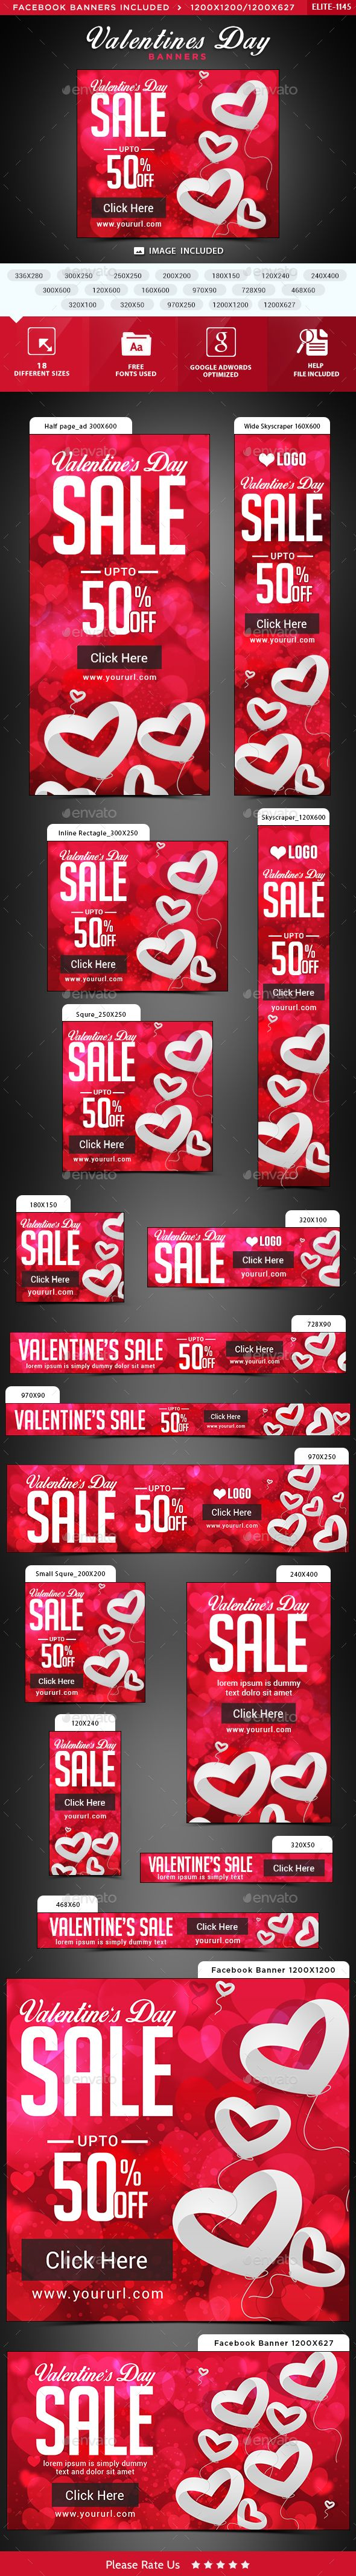 Valentines Day Web Banners Template PSD. Download here: http://graphicriver.net/item/valentines-day-banners/14752765?ref=ksioks